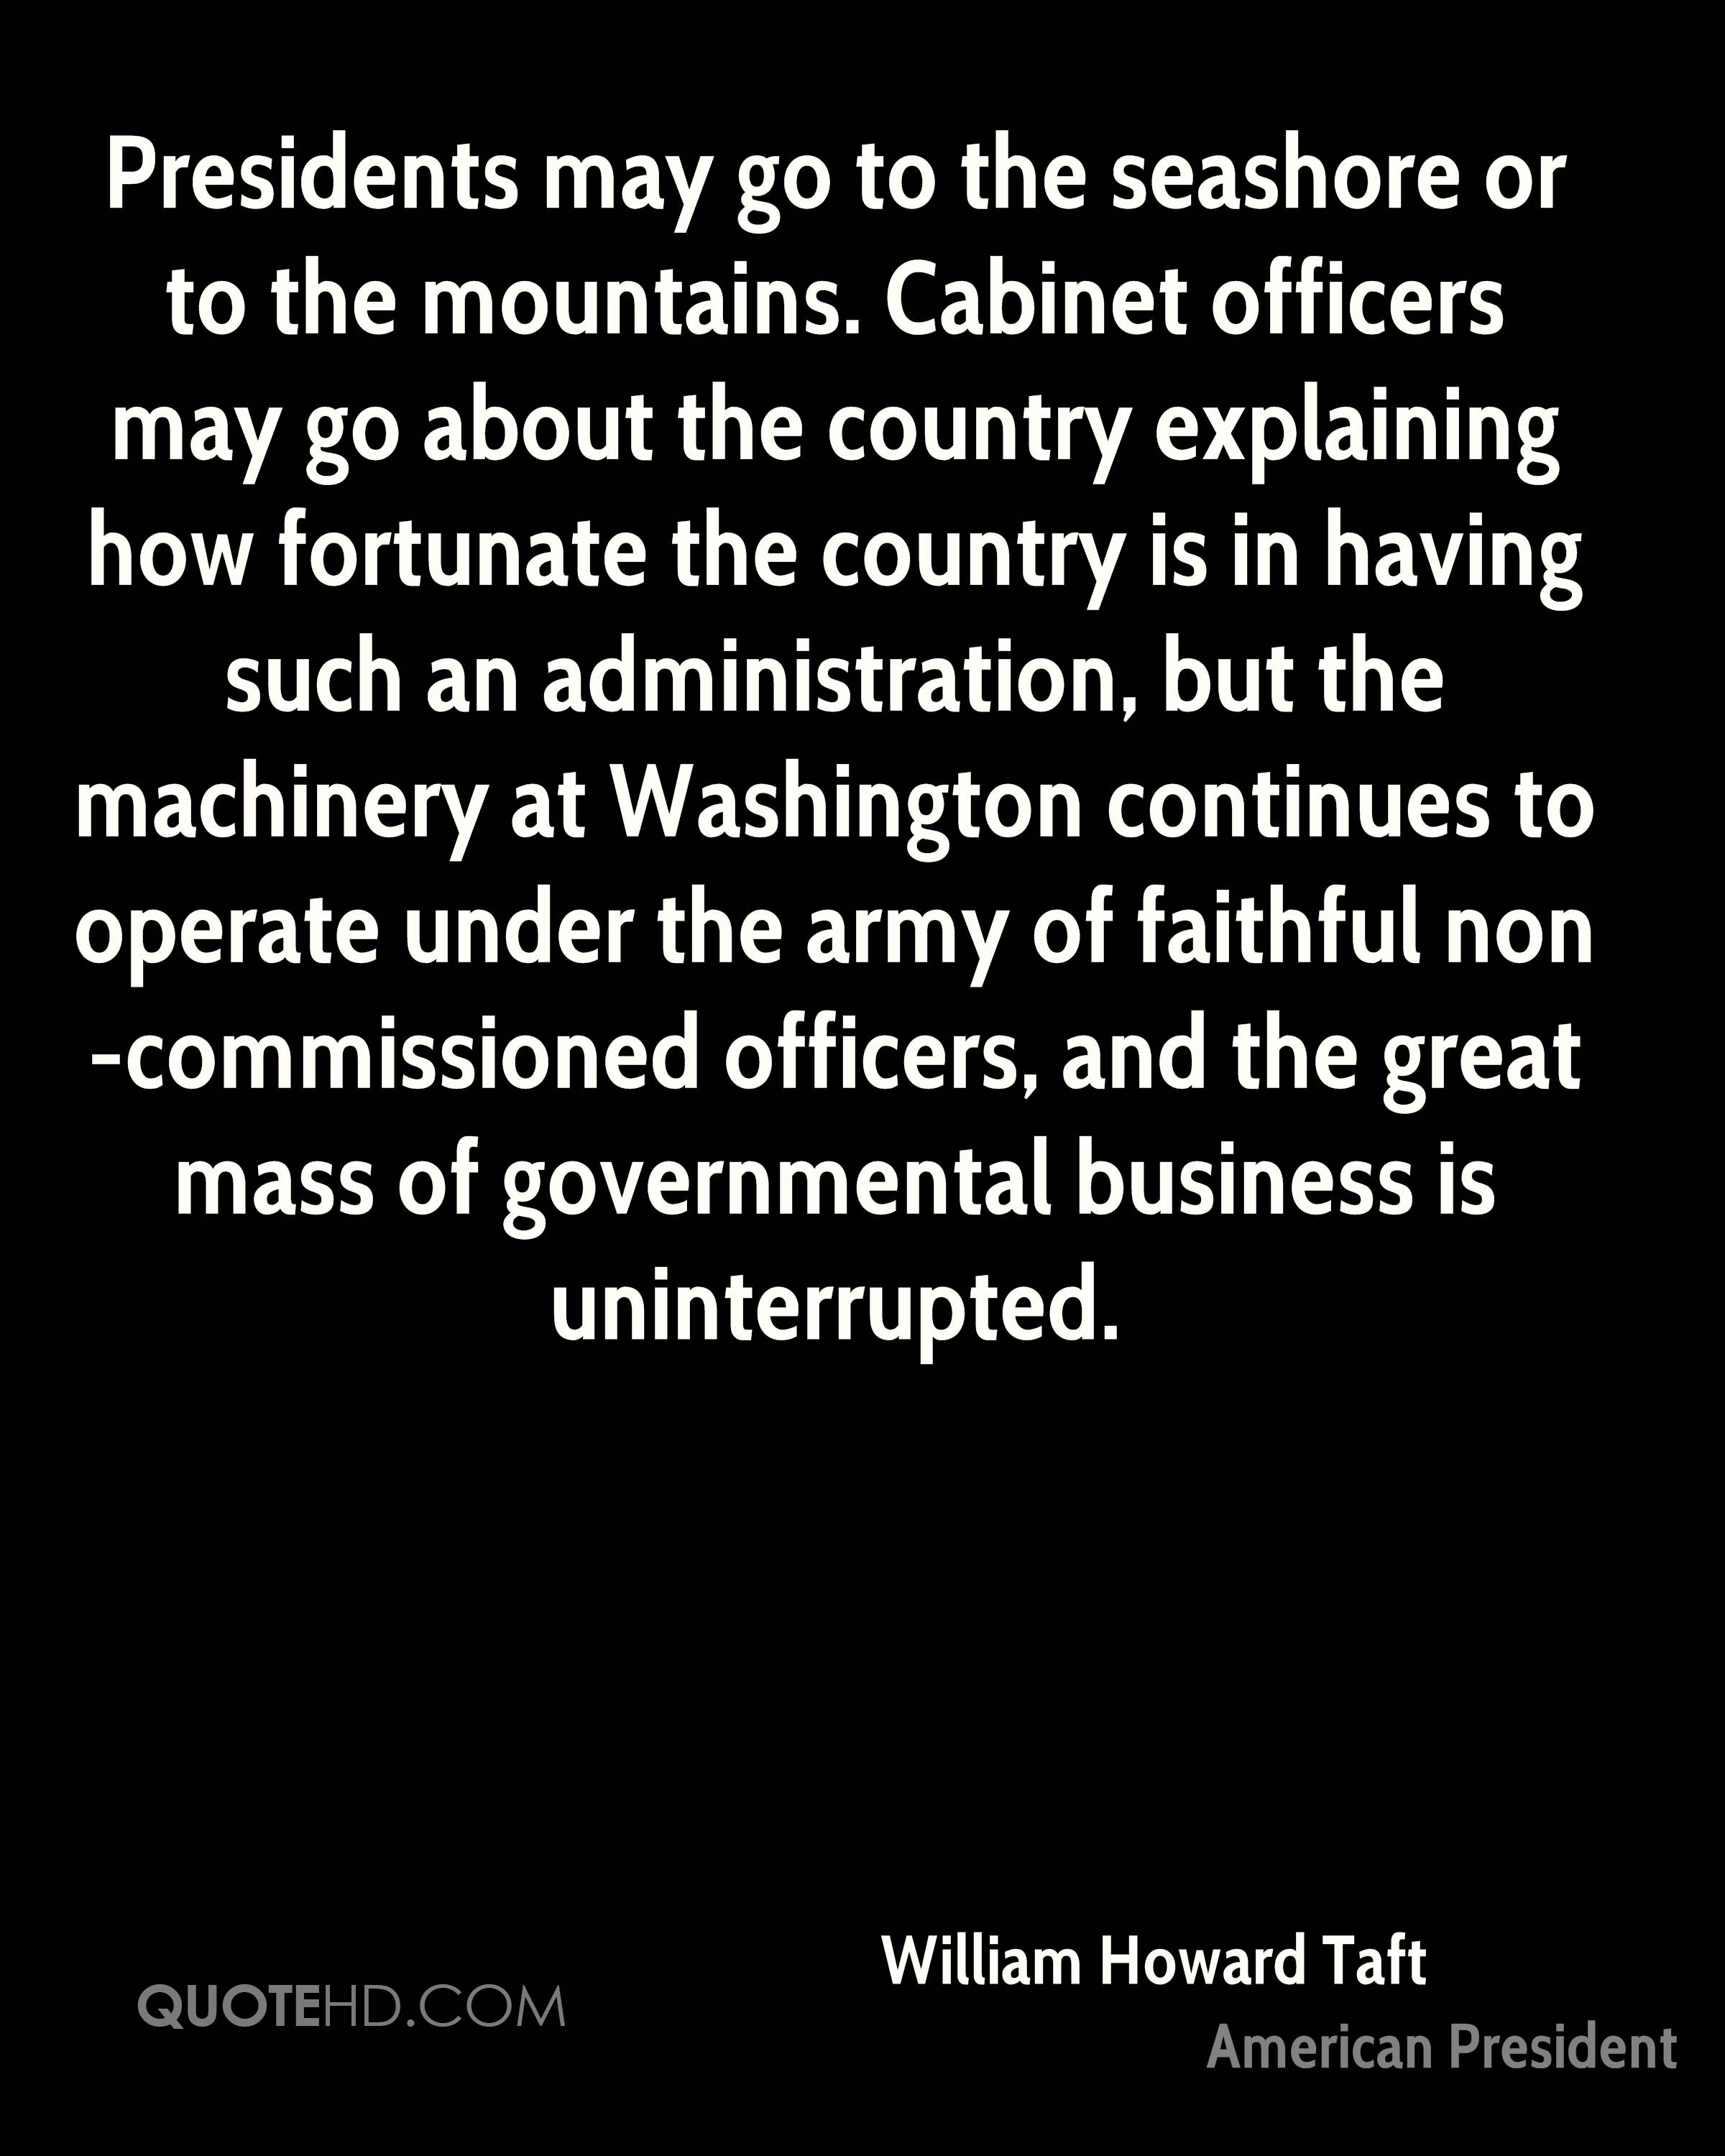 Presidents may go to the seashore or to the mountains. Cabinet officers may go about the country explaining how fortunate the country is in having such an administration, but the machinery at Washington continues to operate under the army of faithful non-commissioned officers, and the great mass of governmental business is uninterrupted.